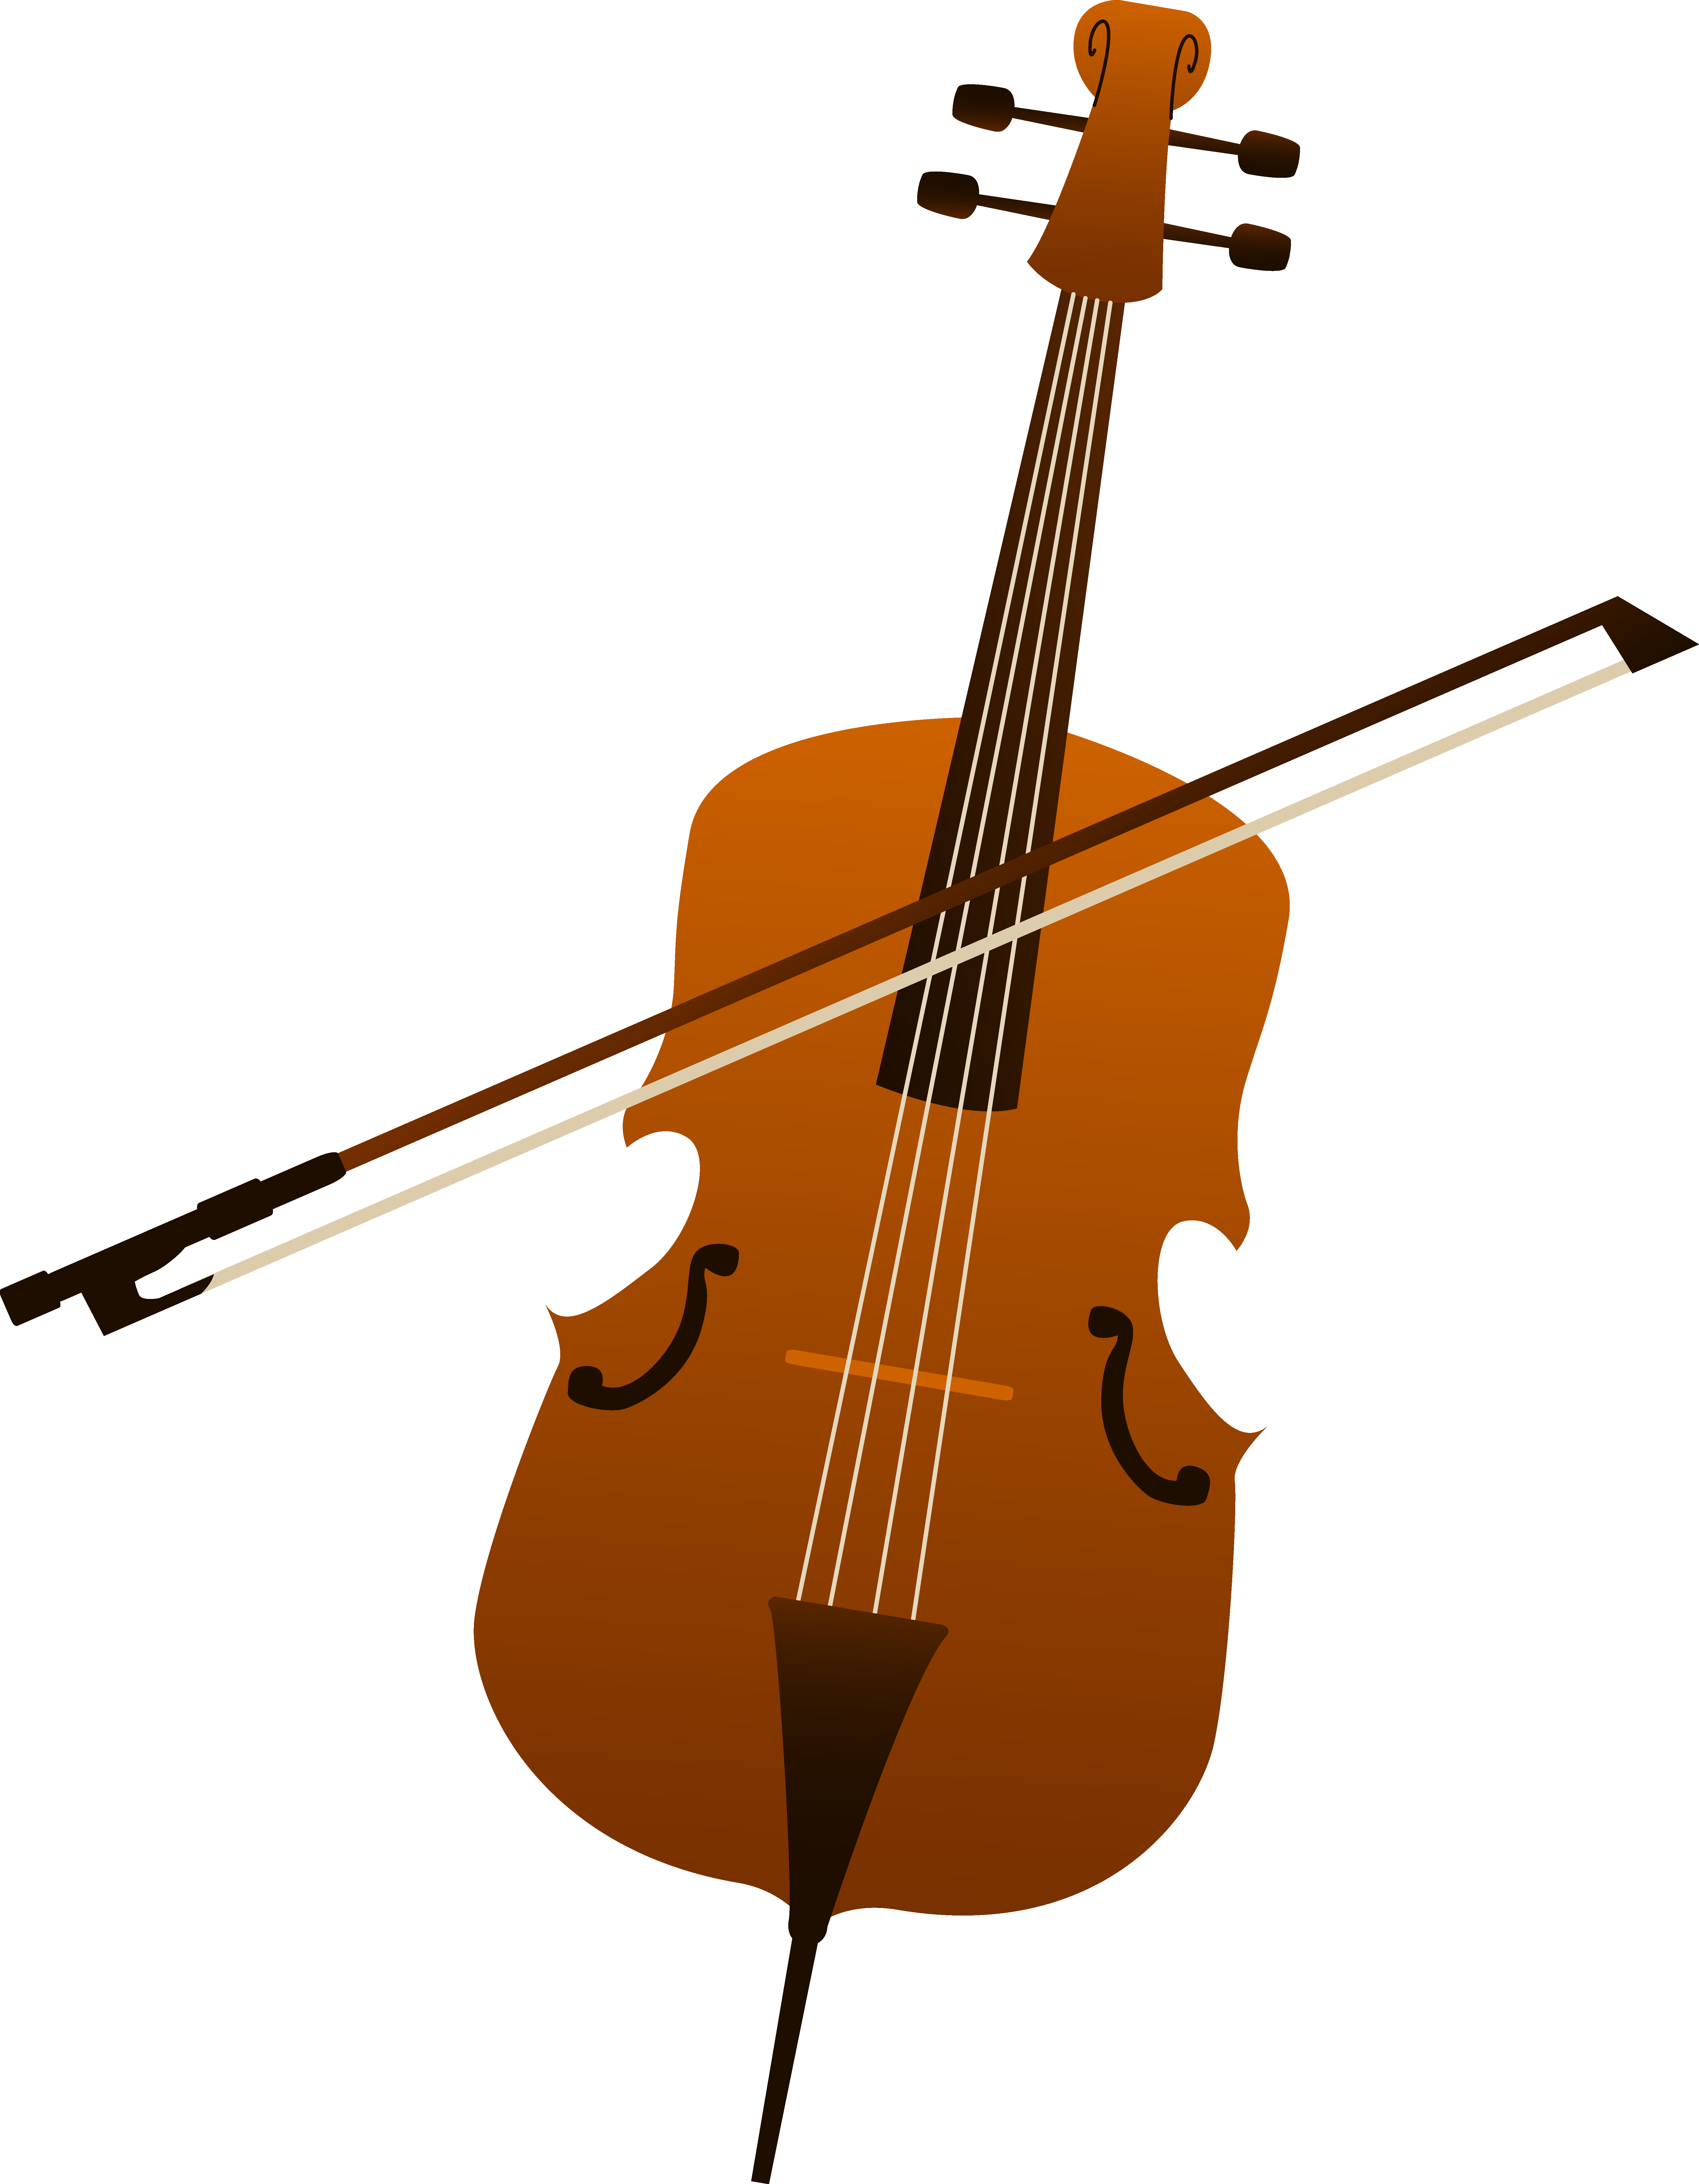 Free clipart cello vector freeuse download Elegant Cello Design - Free Clip Art vector freeuse download